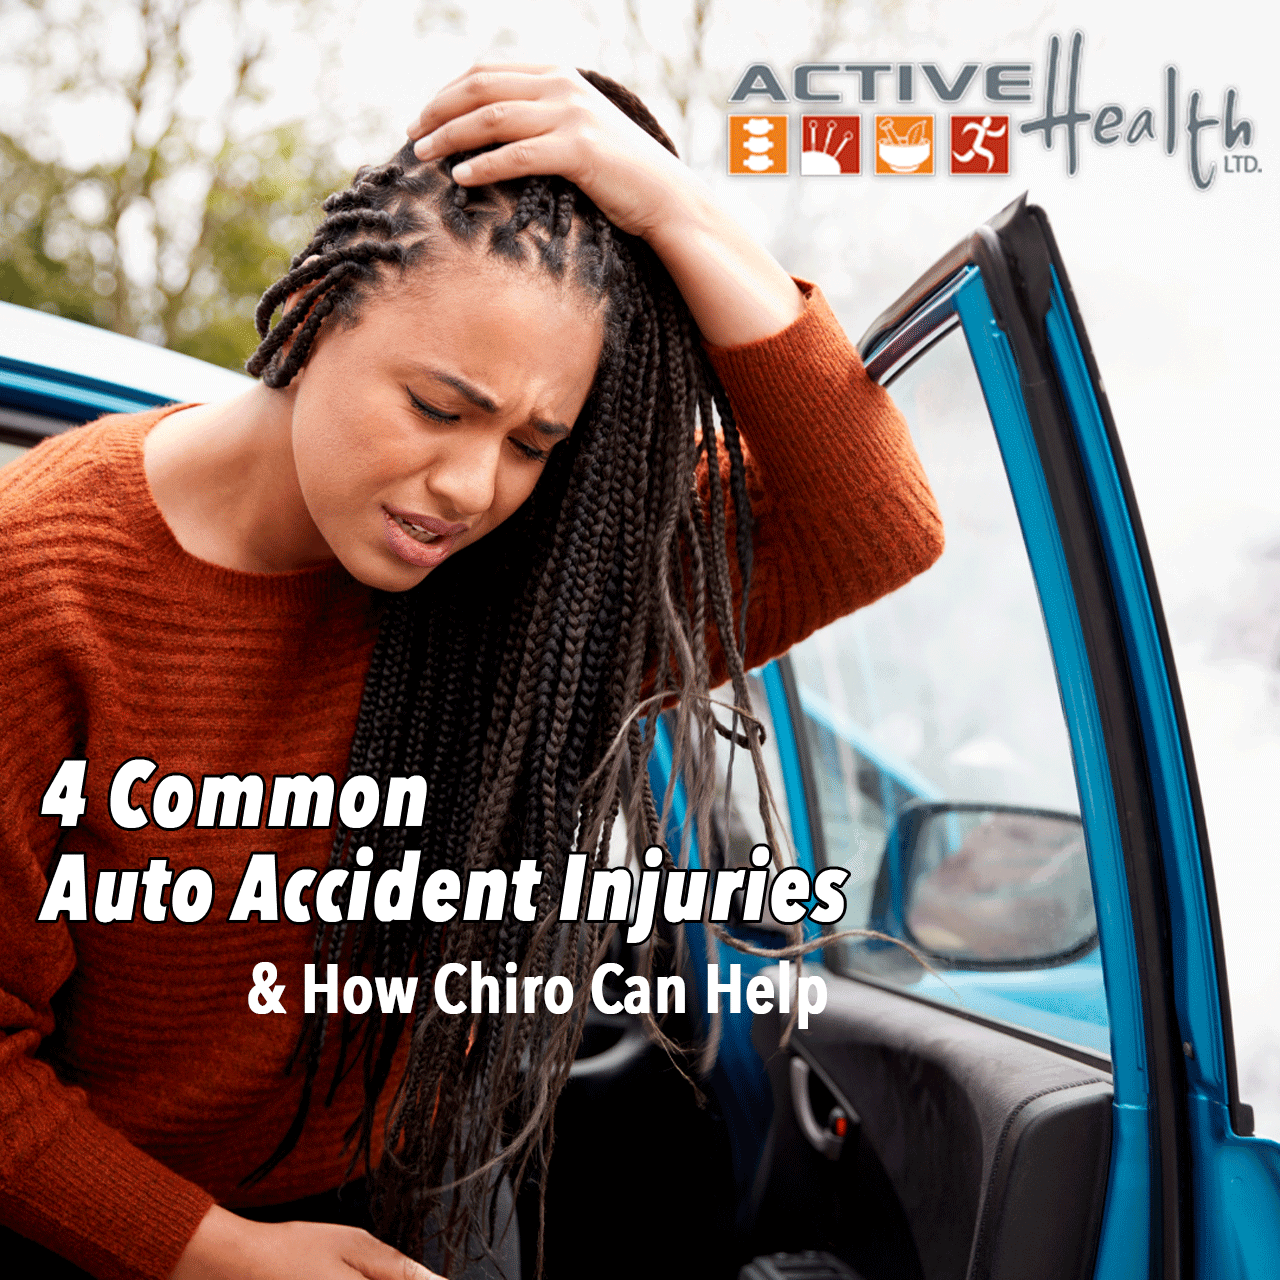 chiropractic help for auto accidents